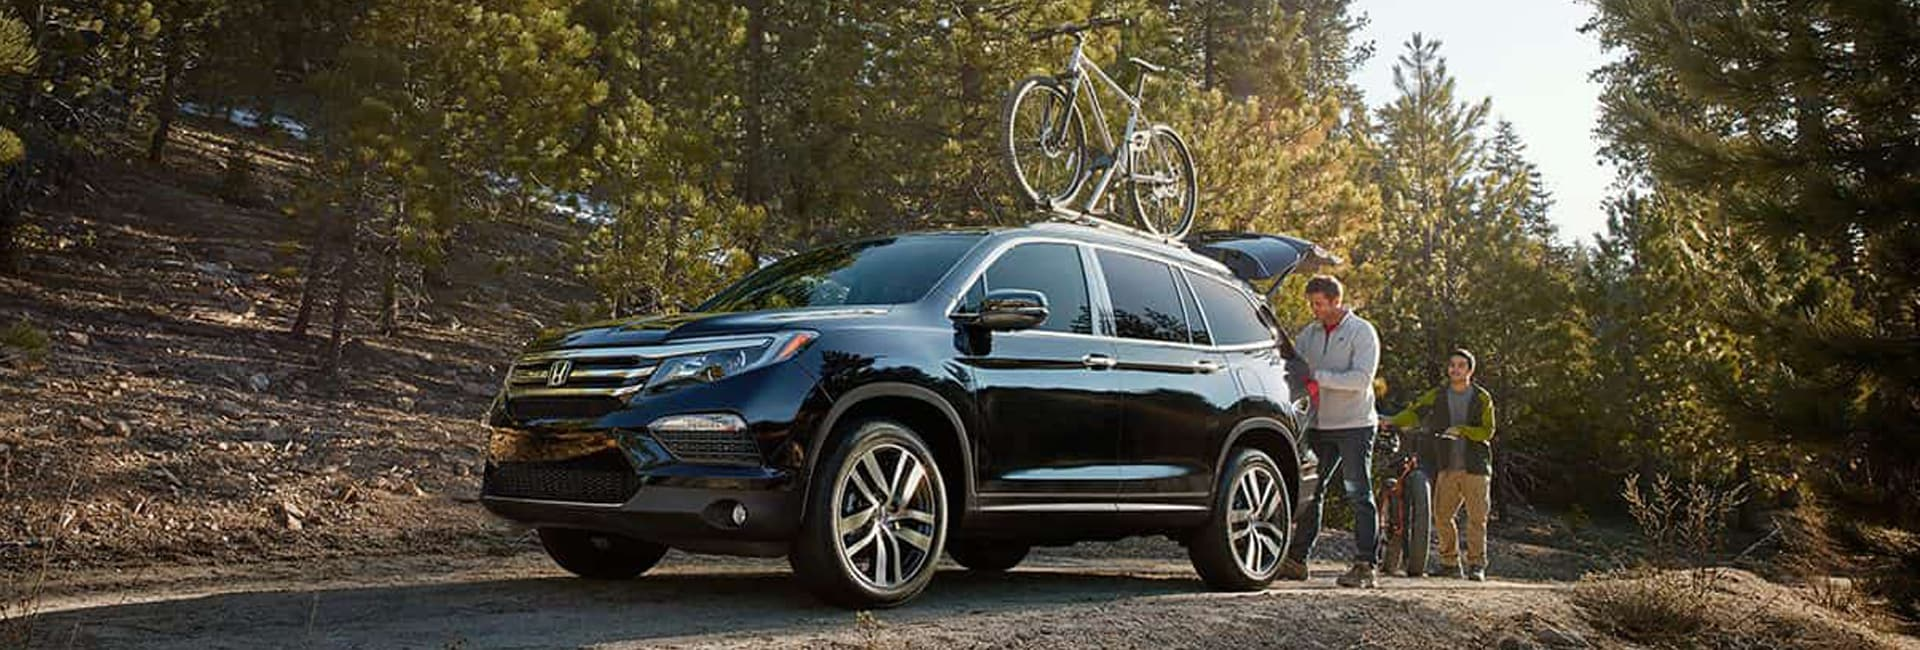 2017 Honda Pilot Exterior Features